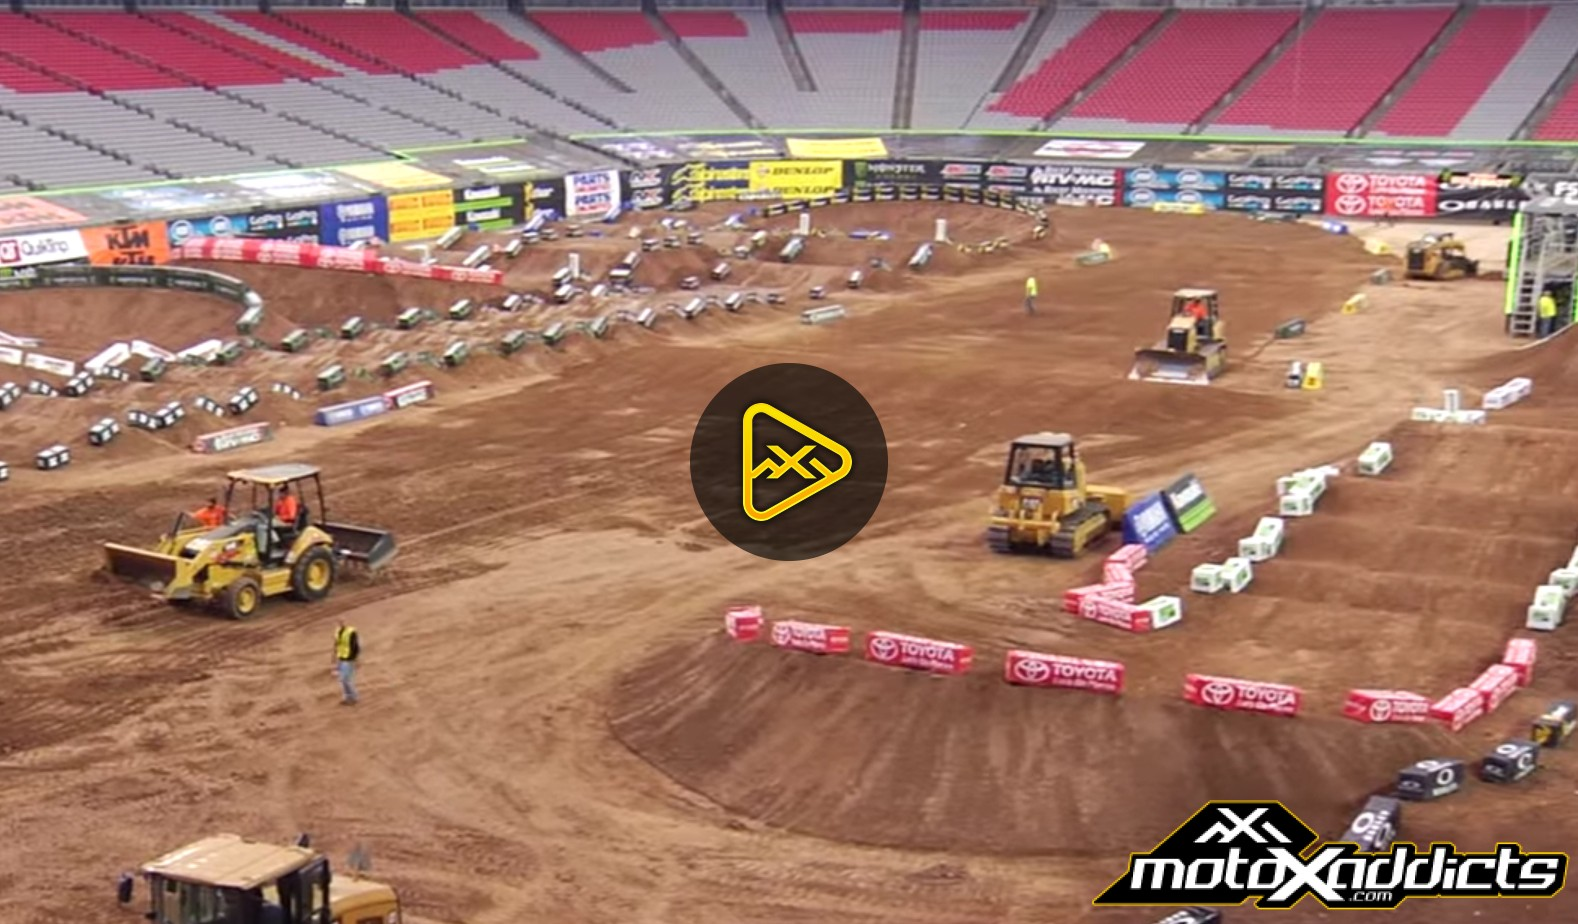 Inside Look at the 2016 San Diego 2 SX Track